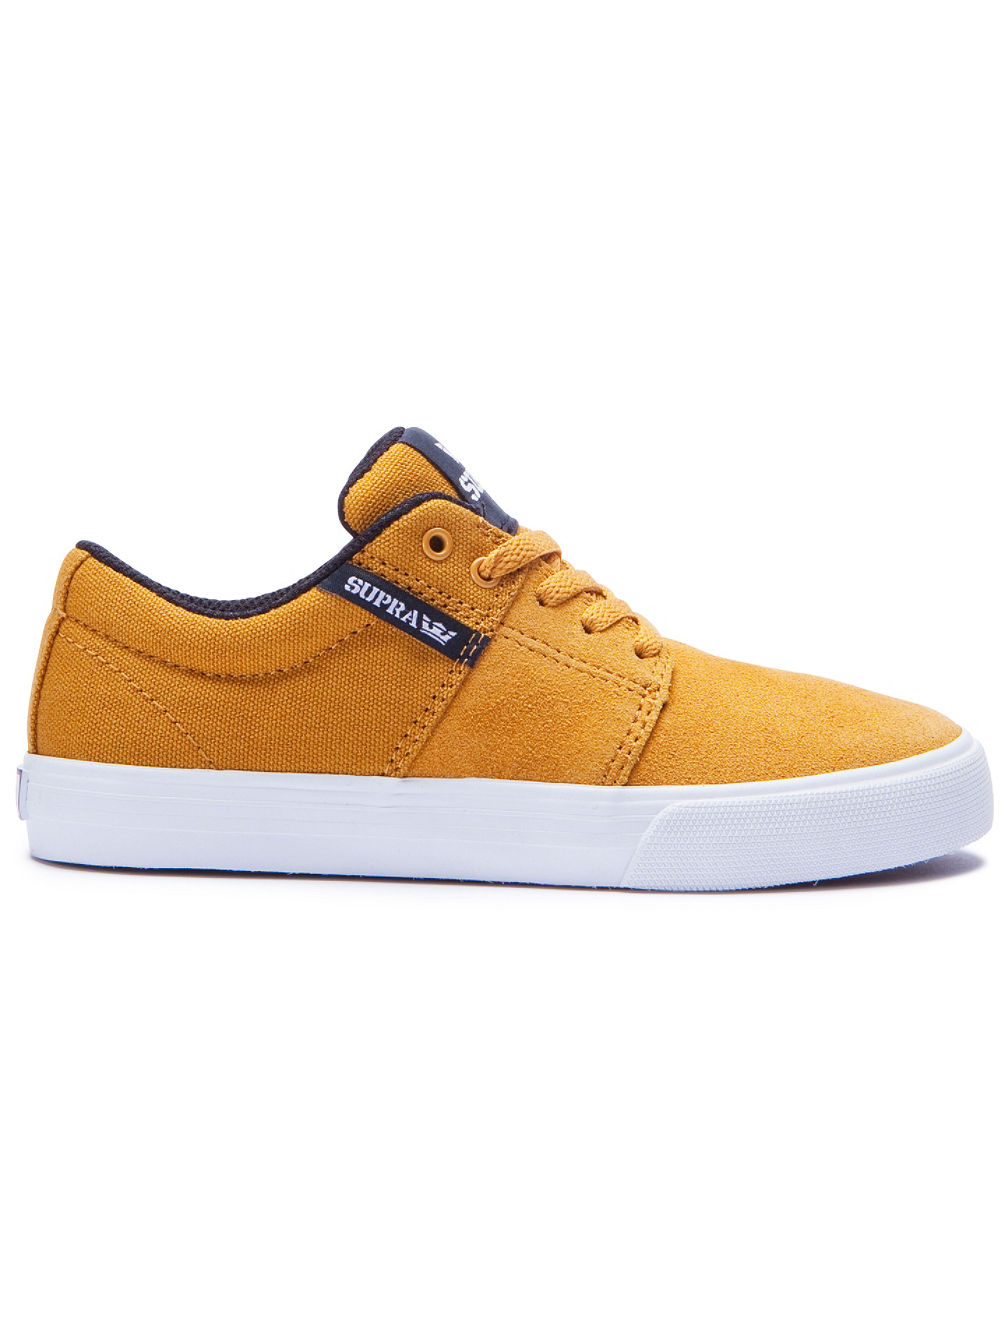 Stacks Vulc II Skate Shoes Boys